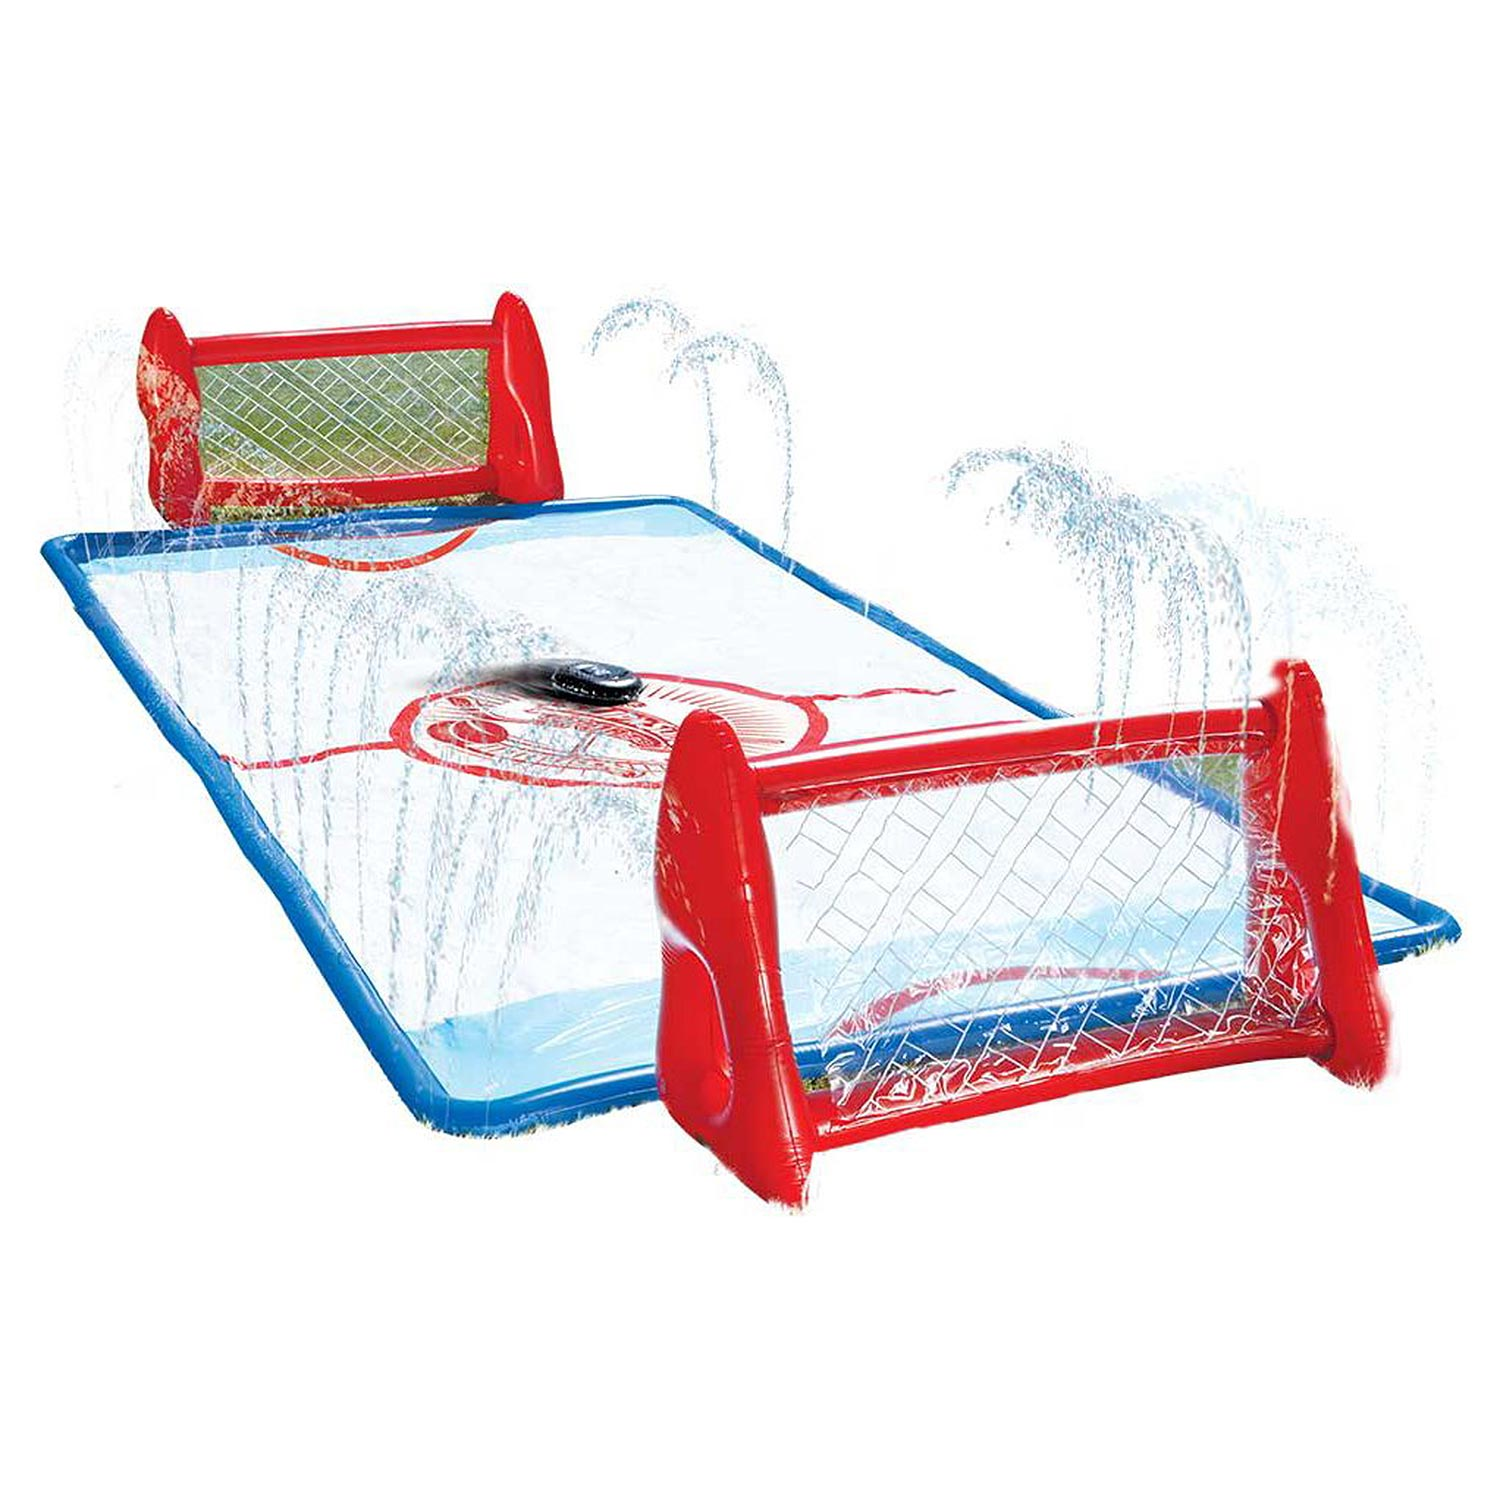 Water Knee Hockey Slip N' Slide Backyard sprinklers